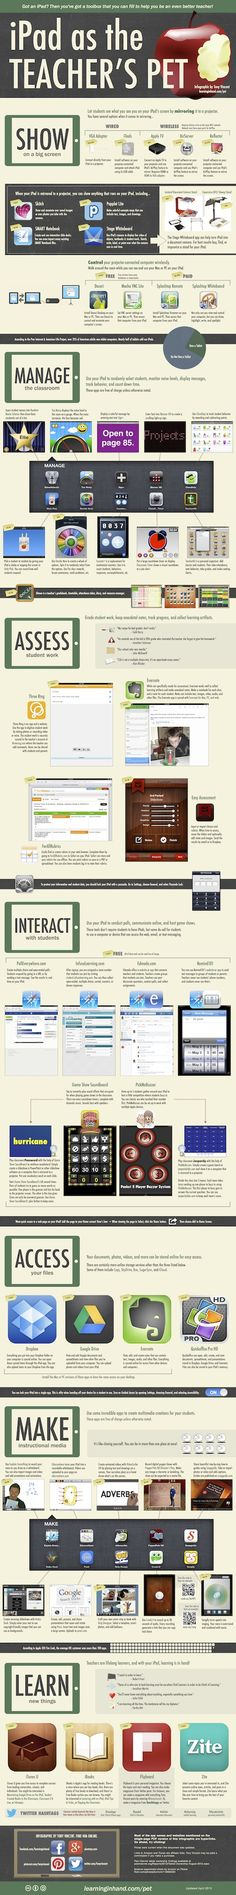 iPad as the Teacher's Pet — Tony Vincent - Learning in Hand